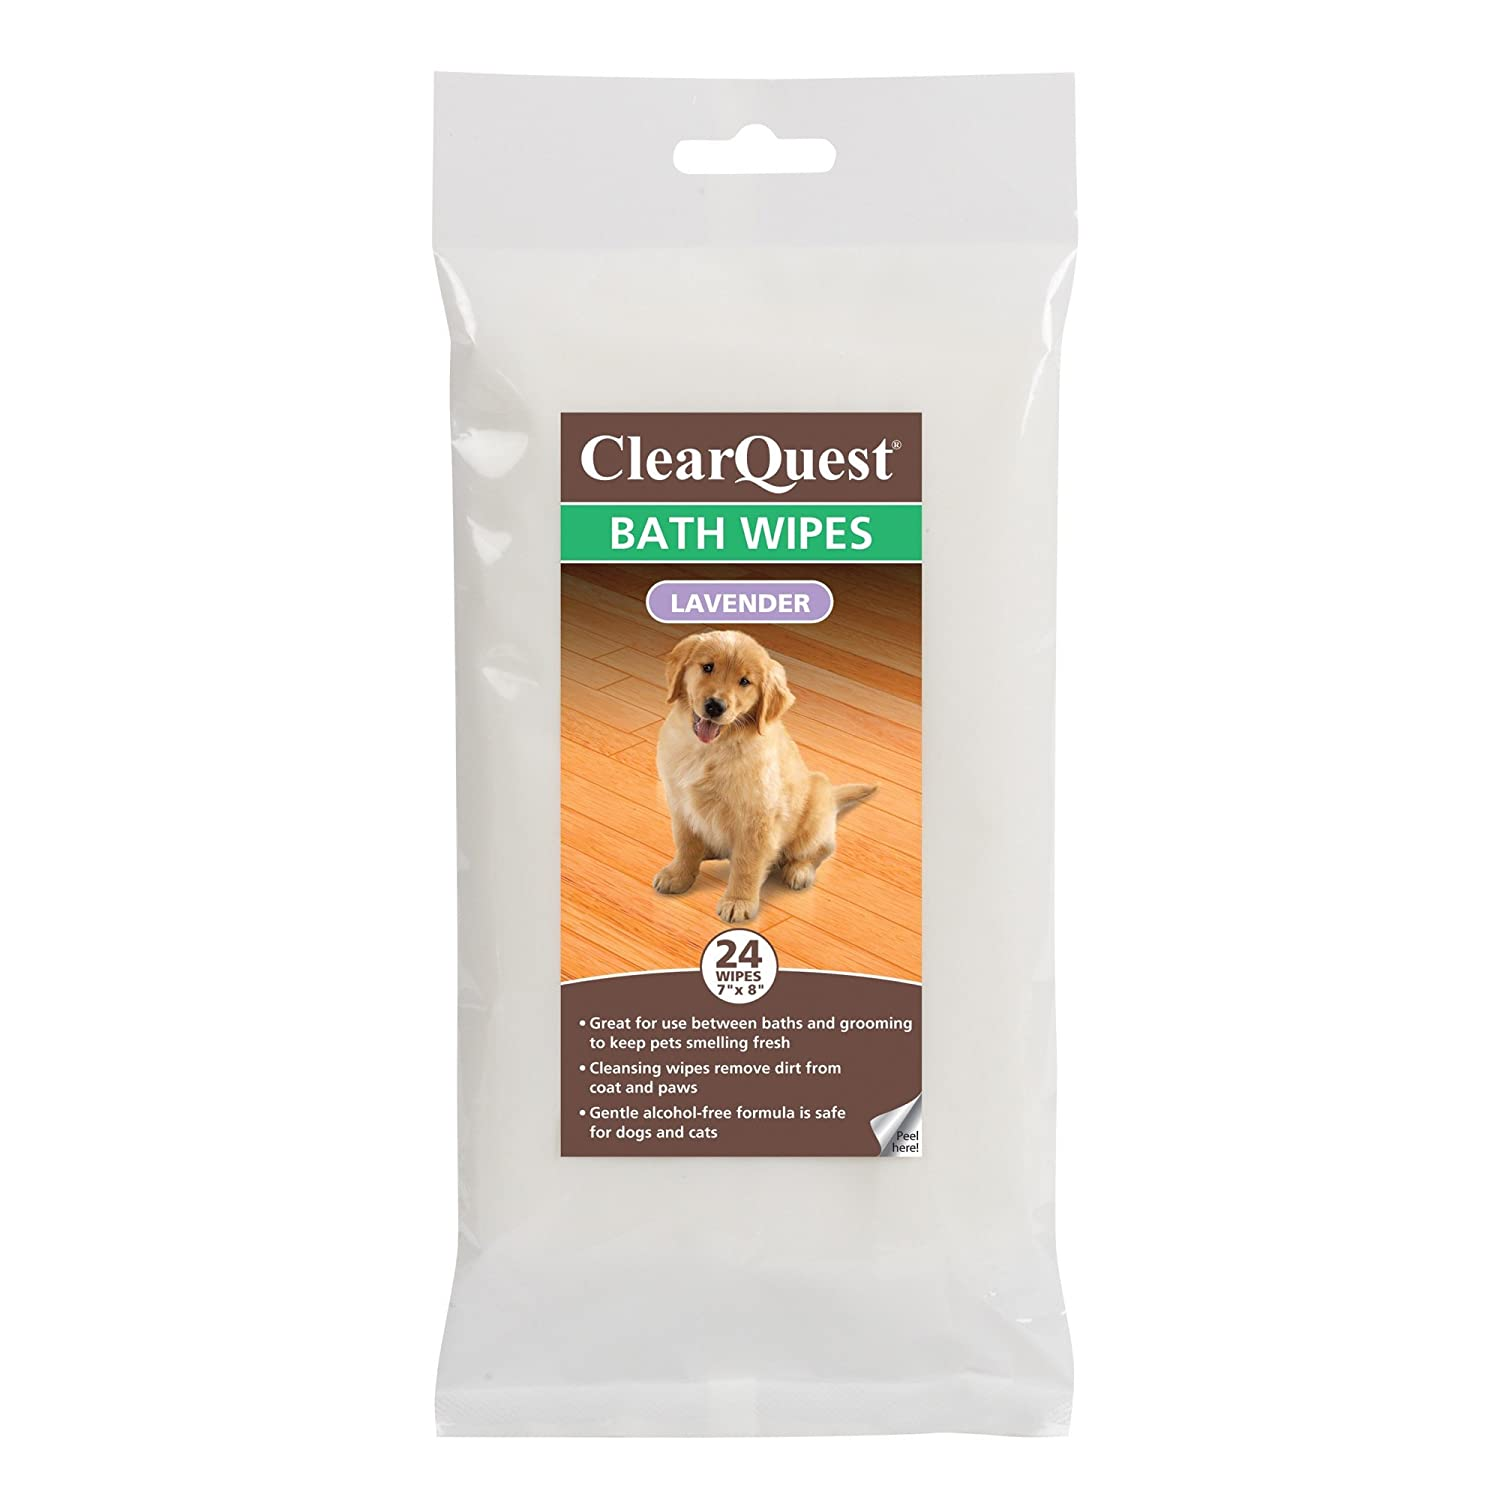 ClearQuest Bath Wipes Alcohol-Free Wipes for Cleaning and Deodorizing Dogs and Cats Between Baths Lavender, 24-Pack